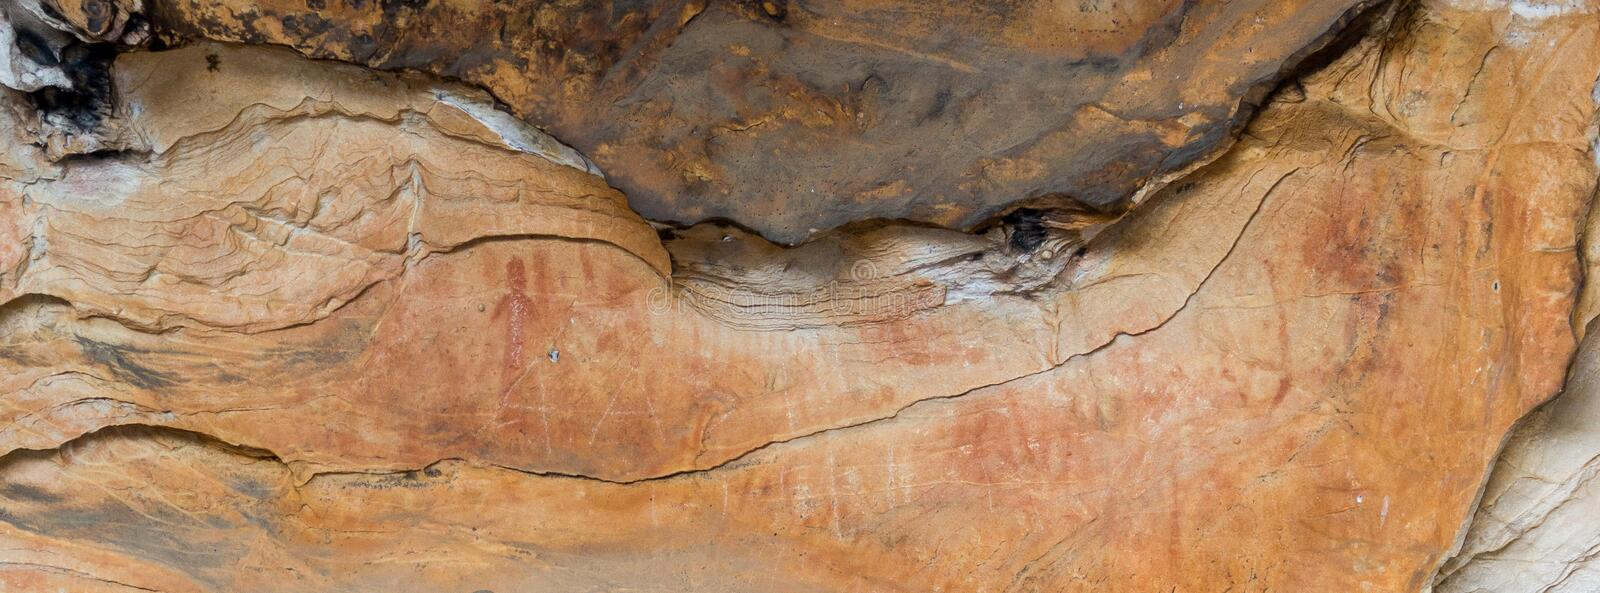 Aboriginal Art: human painting in a cave, grampians national park royalty free stock photo